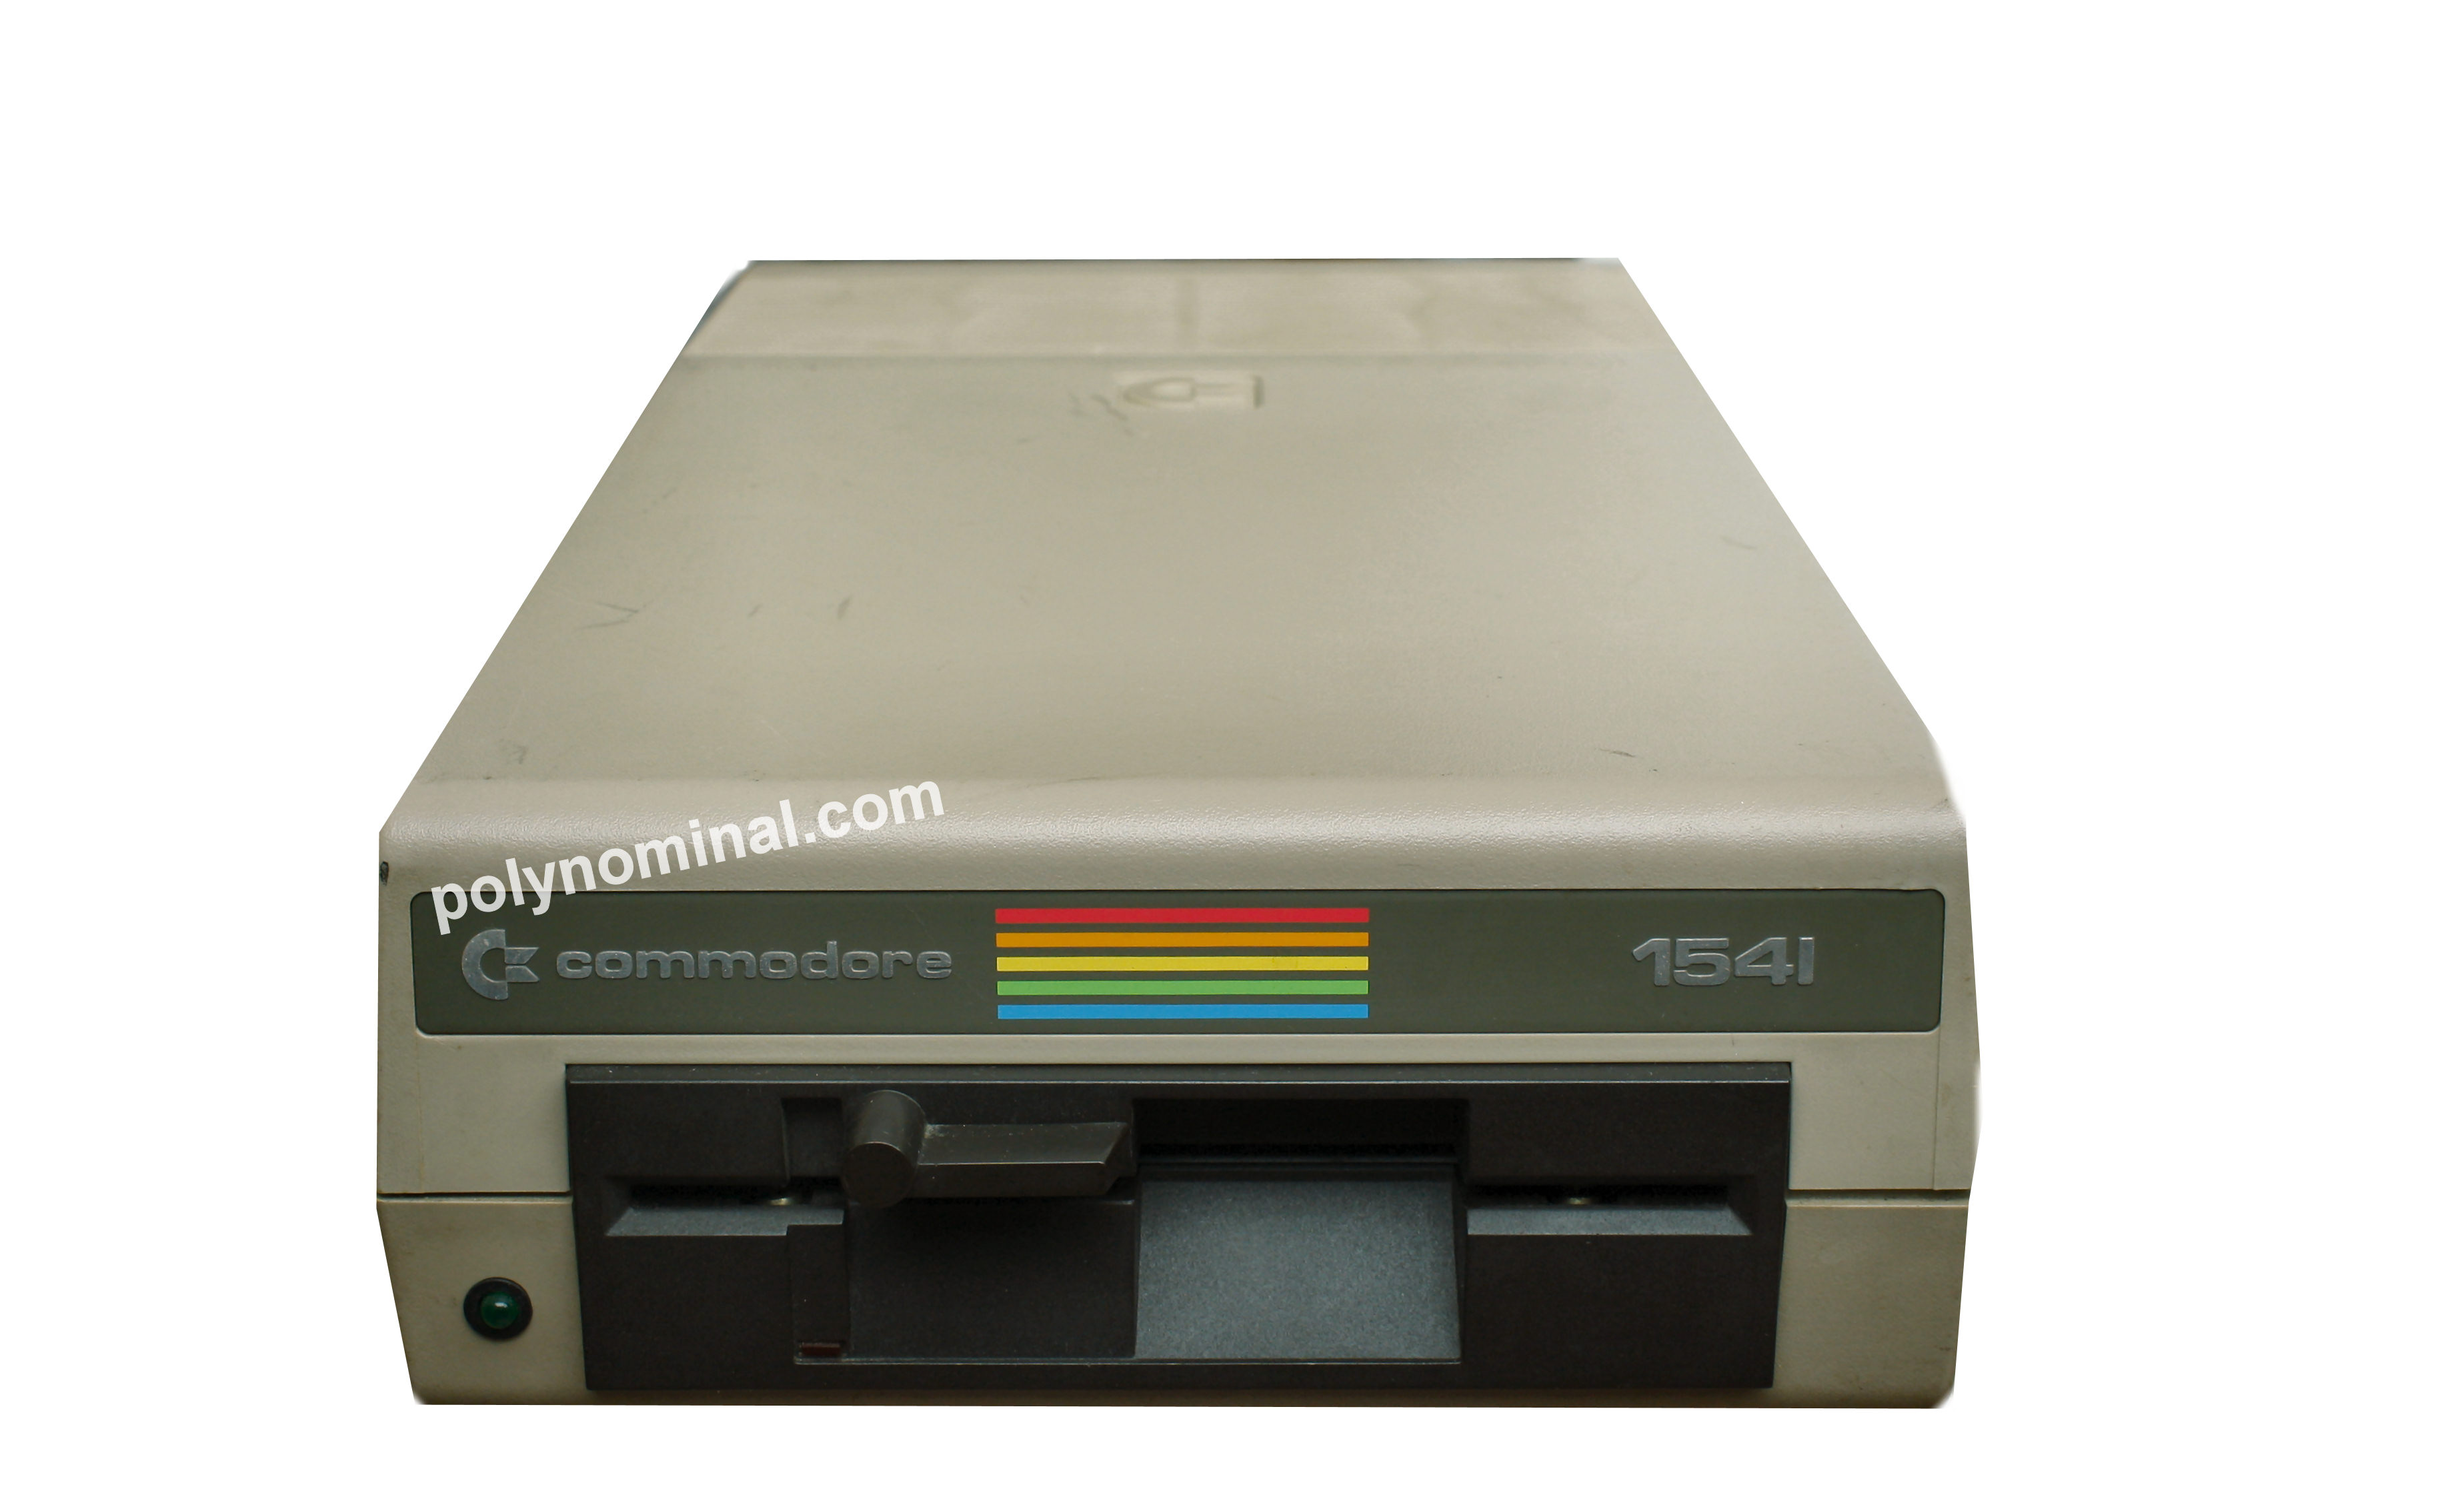 Commodore 64 Sid Chip Rev A Motherboard Schematics From 1982 Memory Kb Ram 8 X Soldered Ic 4116 Data Can Be Saved Usually To Custom Tape Device Or 5 Disk Drive Like